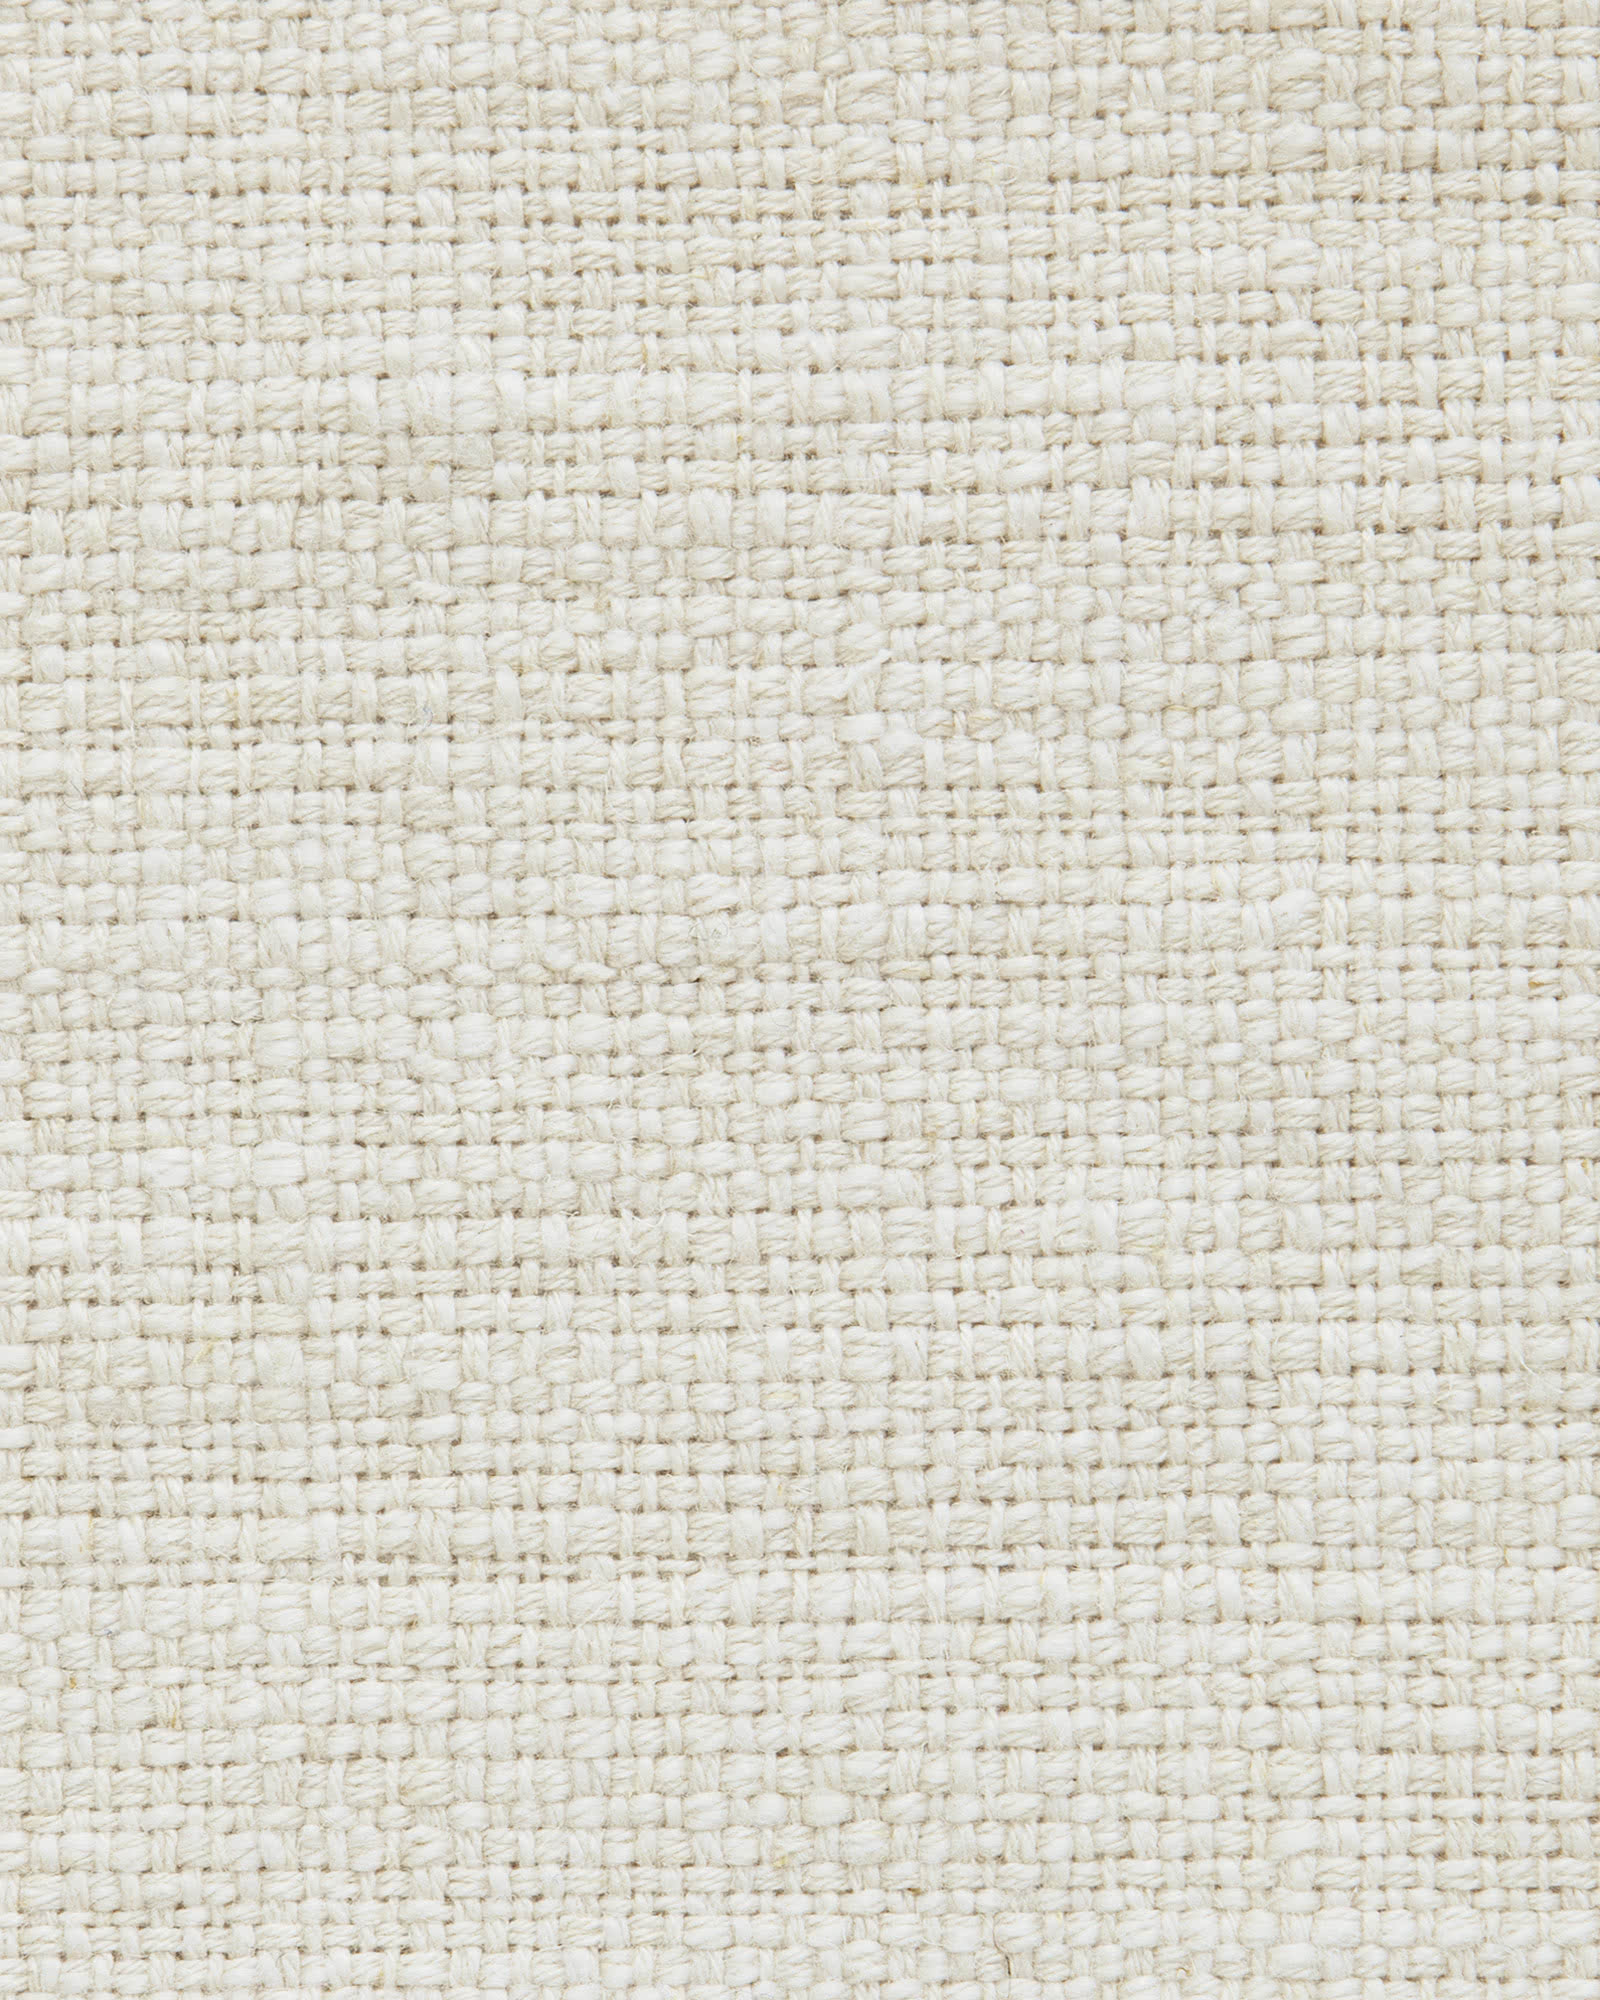 Fabric by the Yard – Linen Basketweave Fabric, Ivory